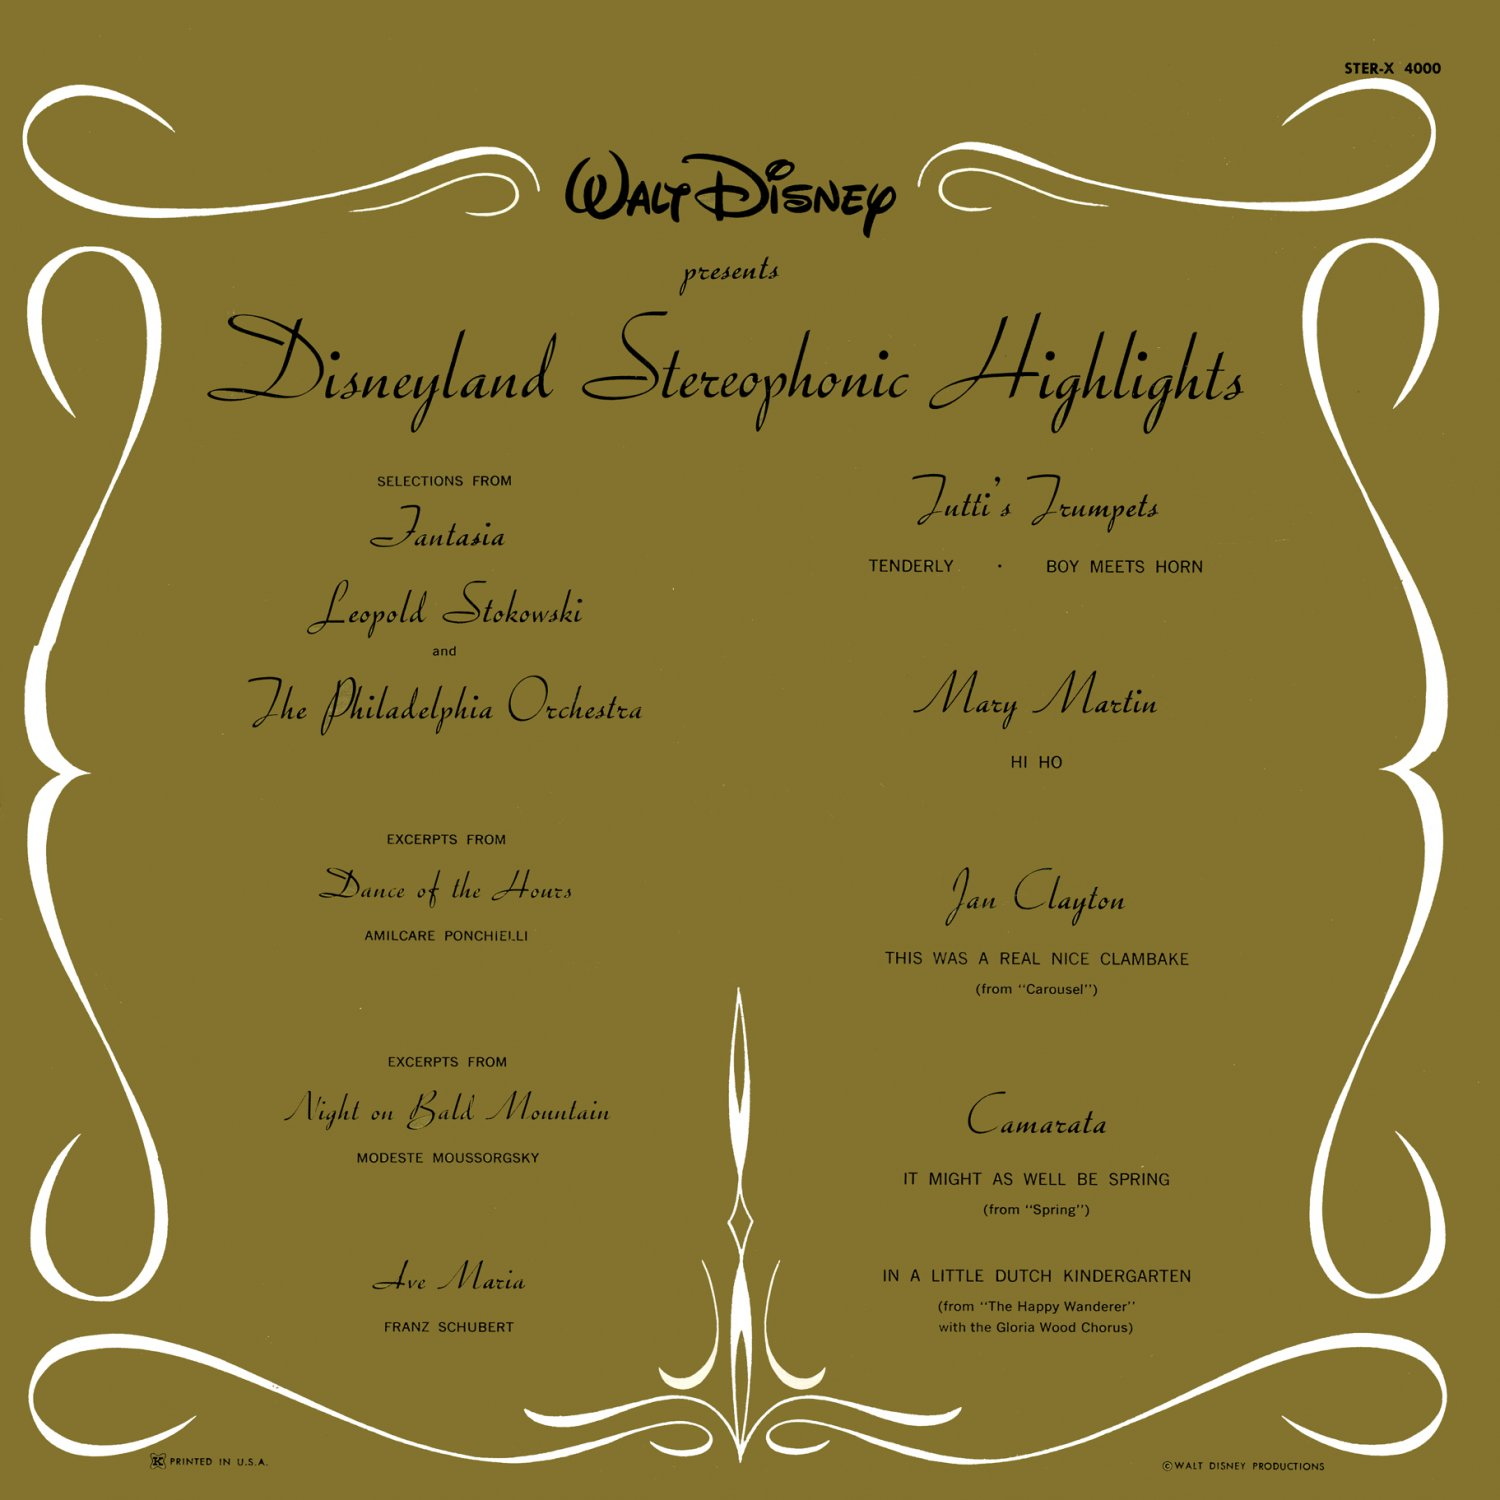 Walt Disney presents Disneyland Stereophonic Highlights - Soundtrack Collection LP/CD